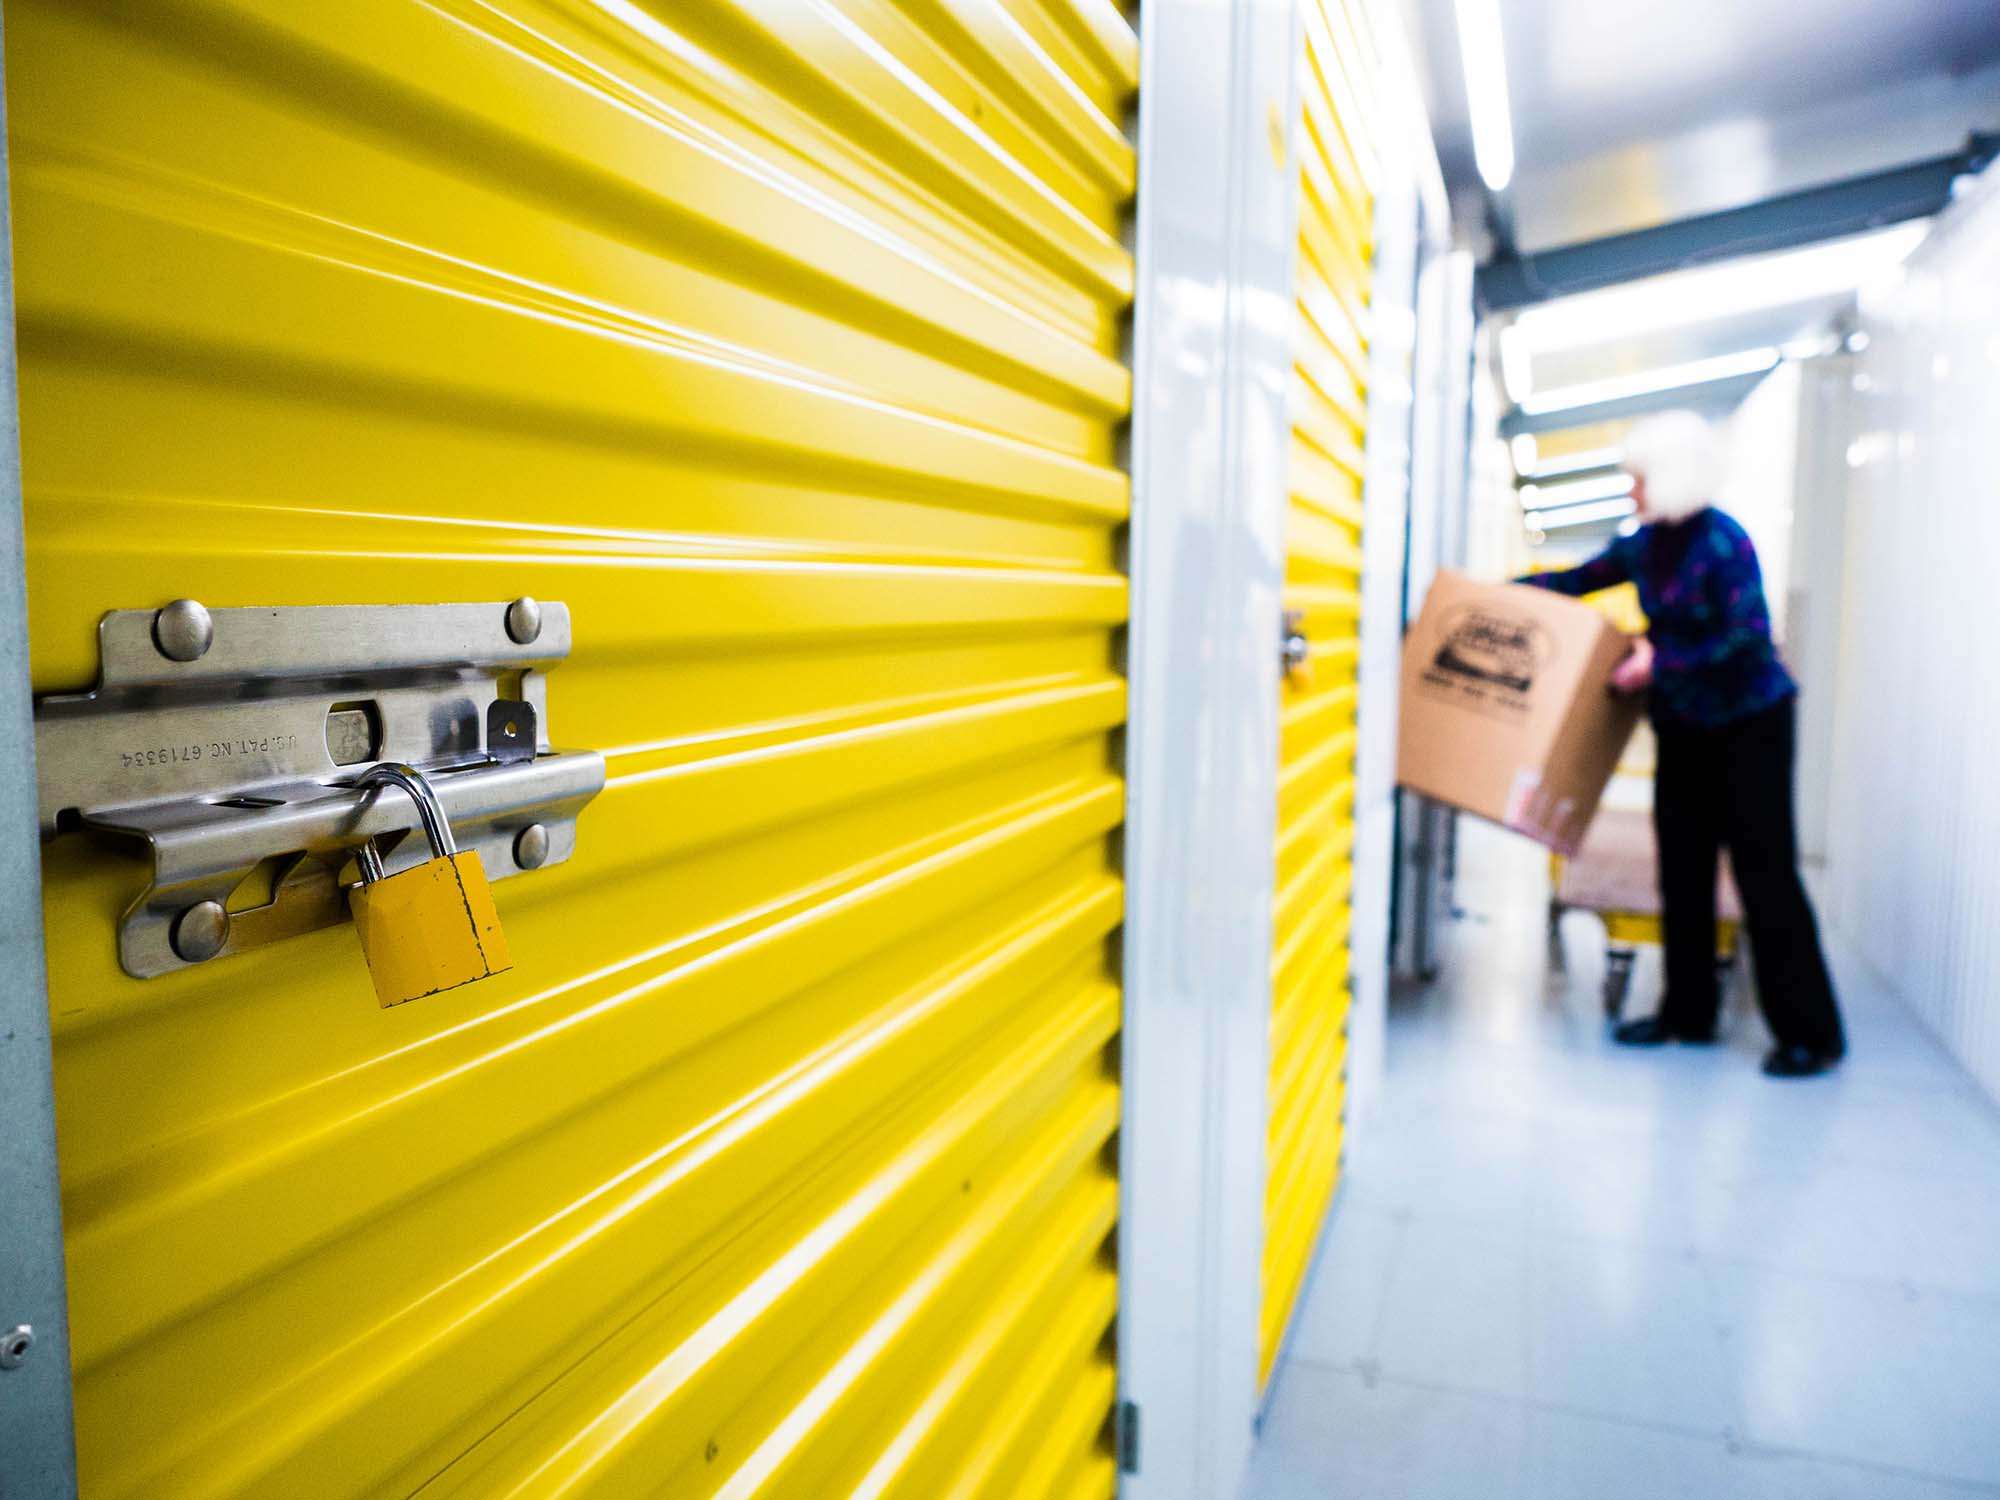 5 Reasons You Might Need Self-Storage (That You Might Not Have Thought About Before)